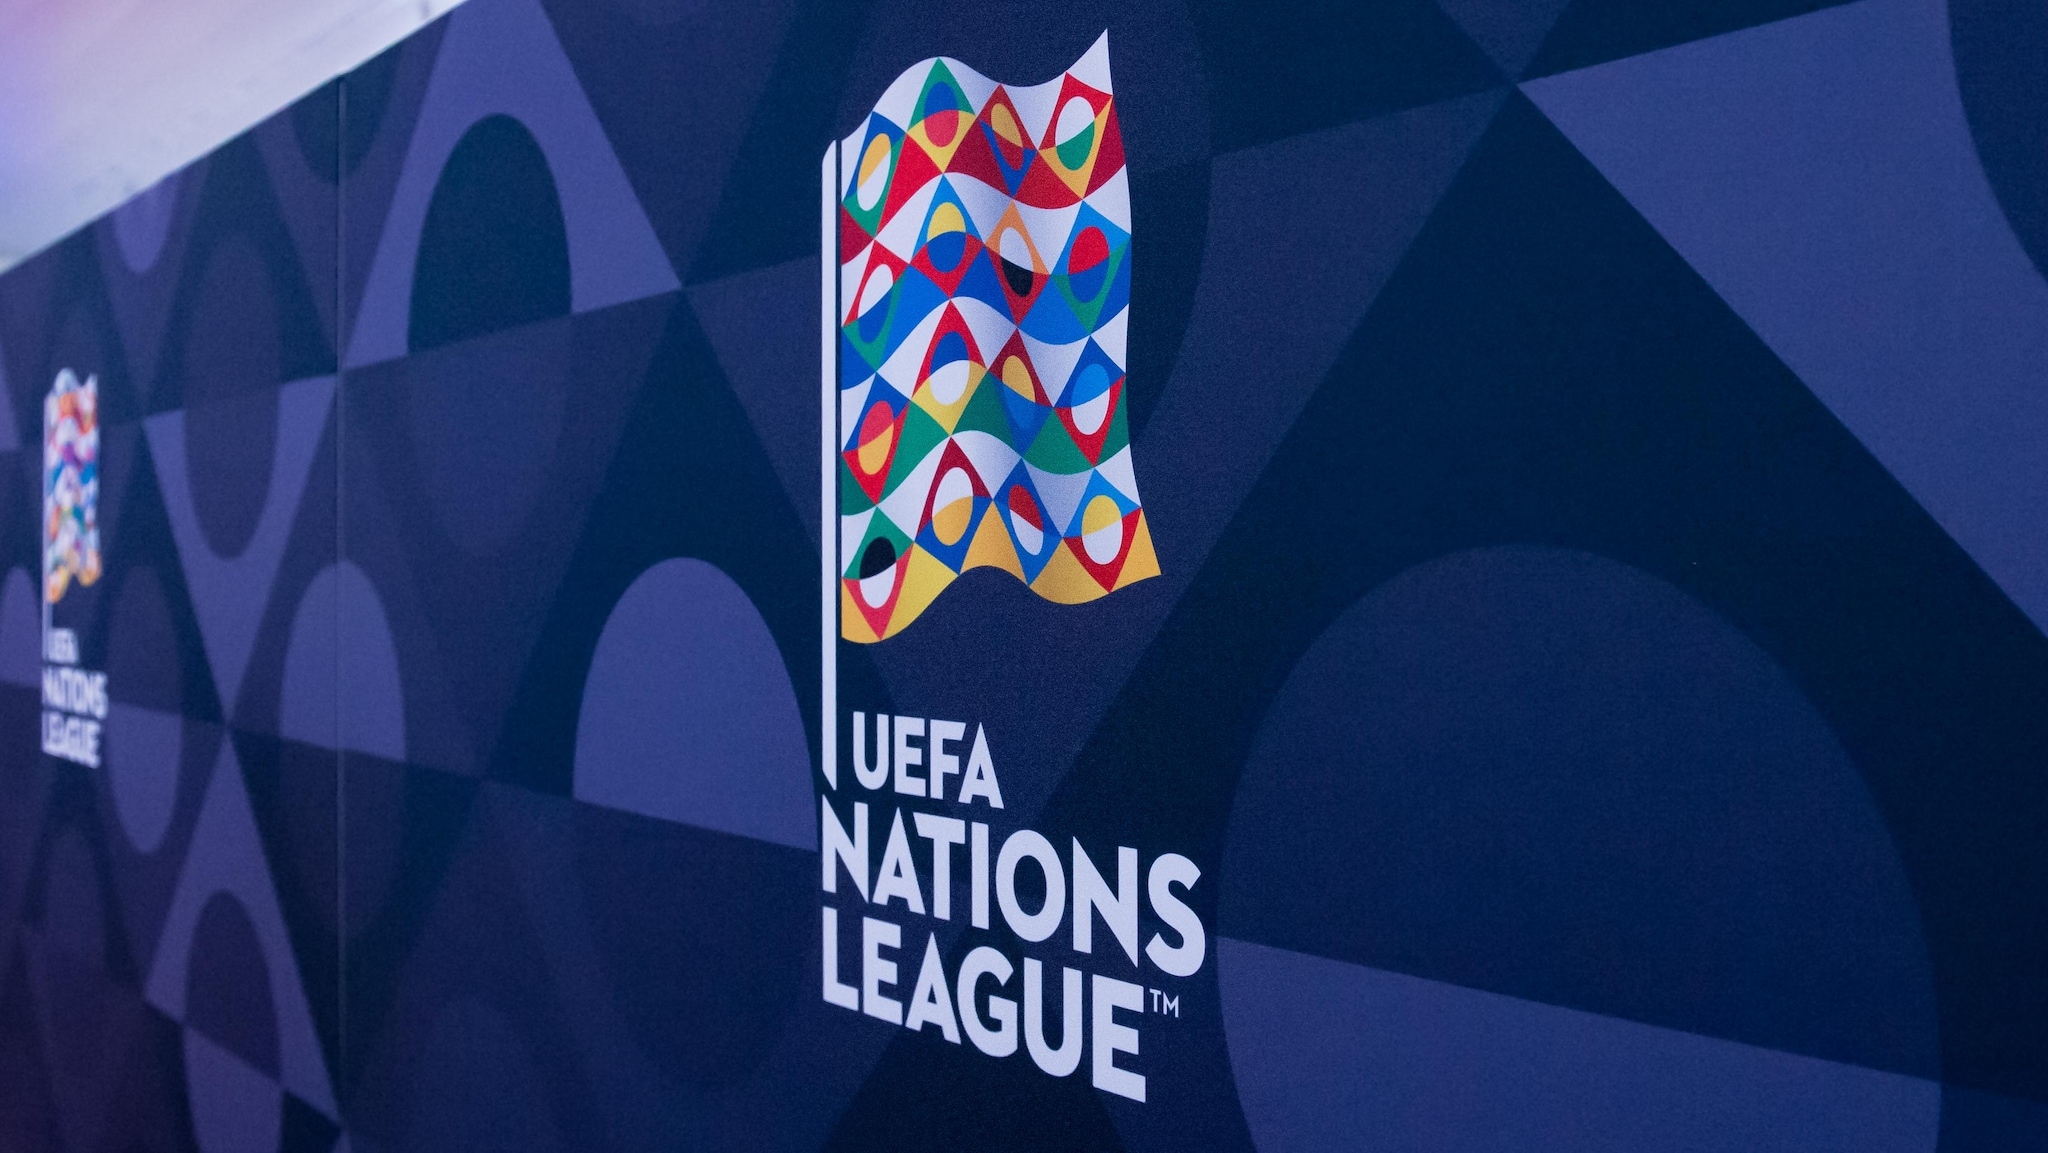 2020 21 Uefa Nations League All You Need To Know Uefa Nations League Uefa Com